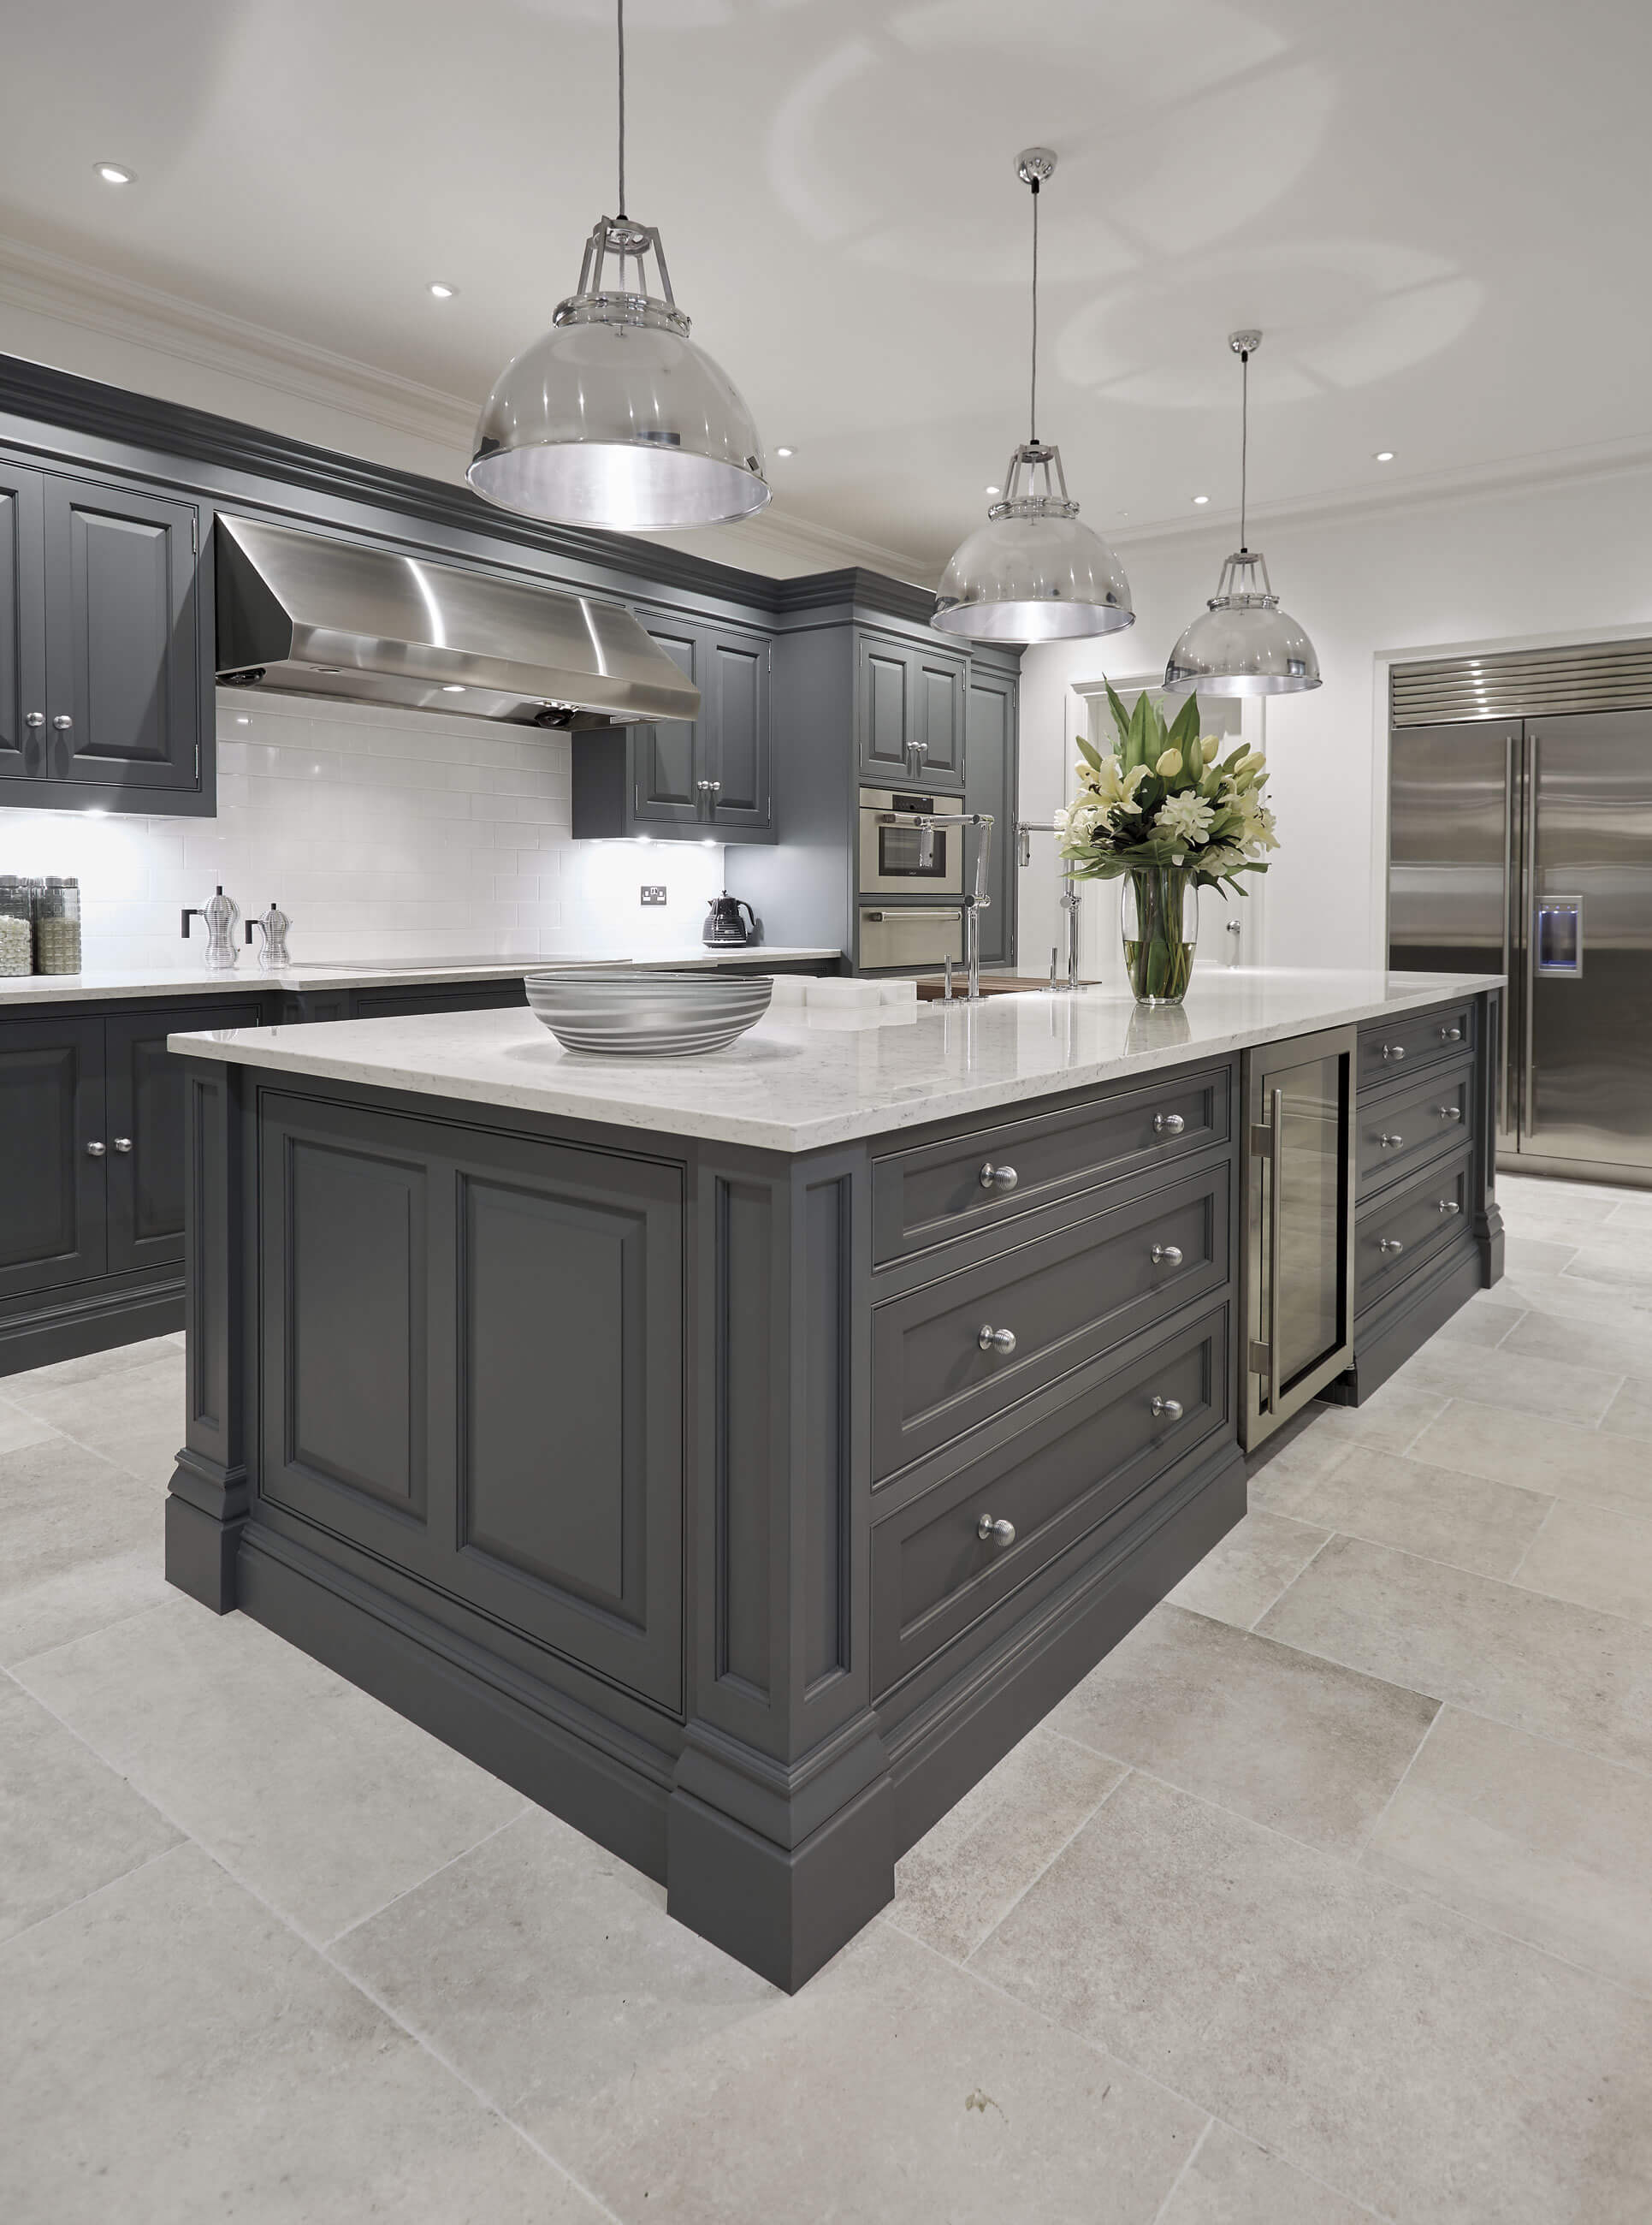 Luxury Kitchen Design Grand: Luxury Grey Kitchen